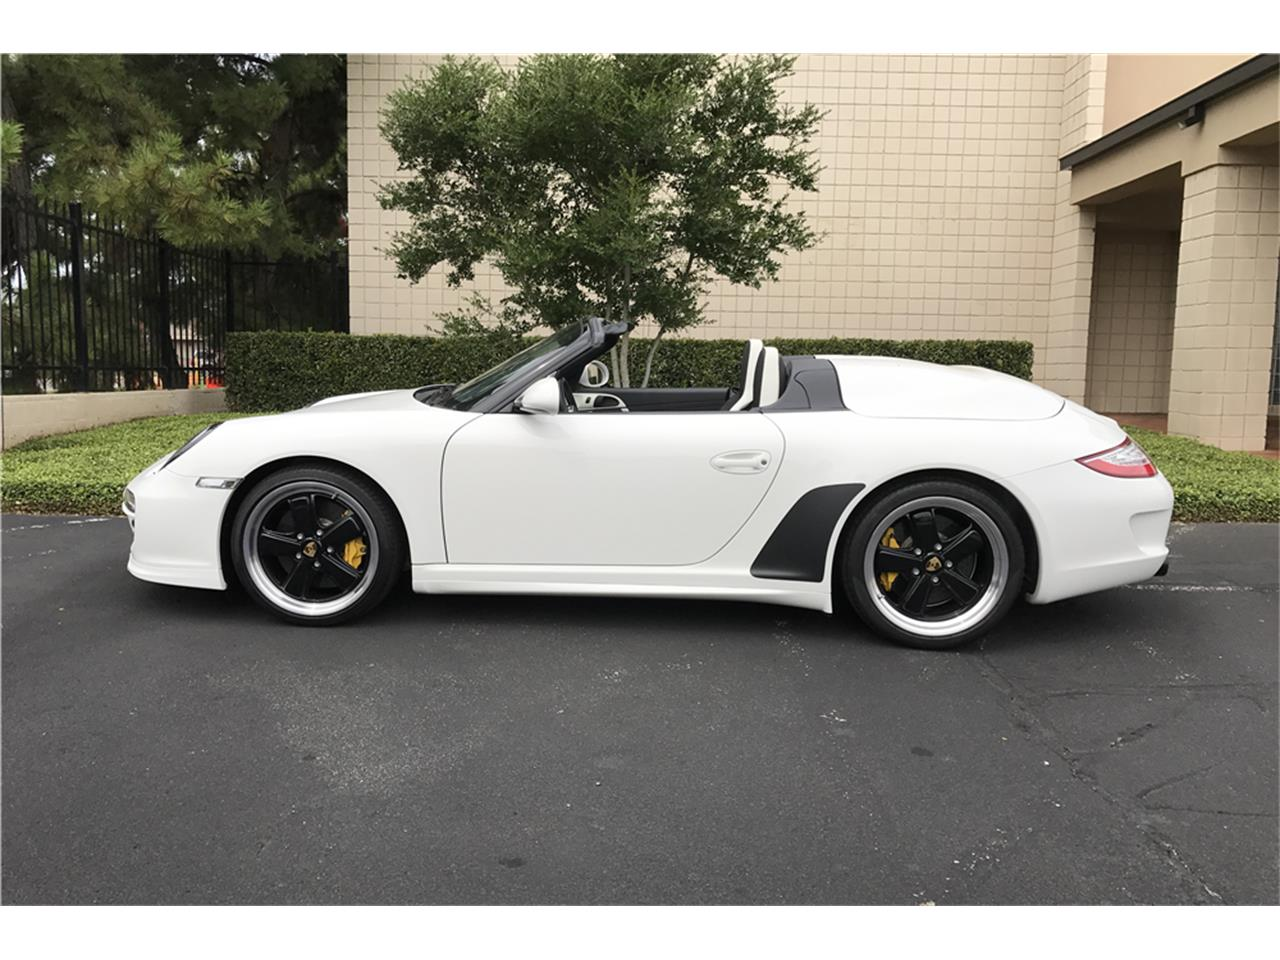 Large Picture of 2011 Porsche Speedster located in Las Vegas Nevada Auction Vehicle Offered by Barrett-Jackson - LWCJ